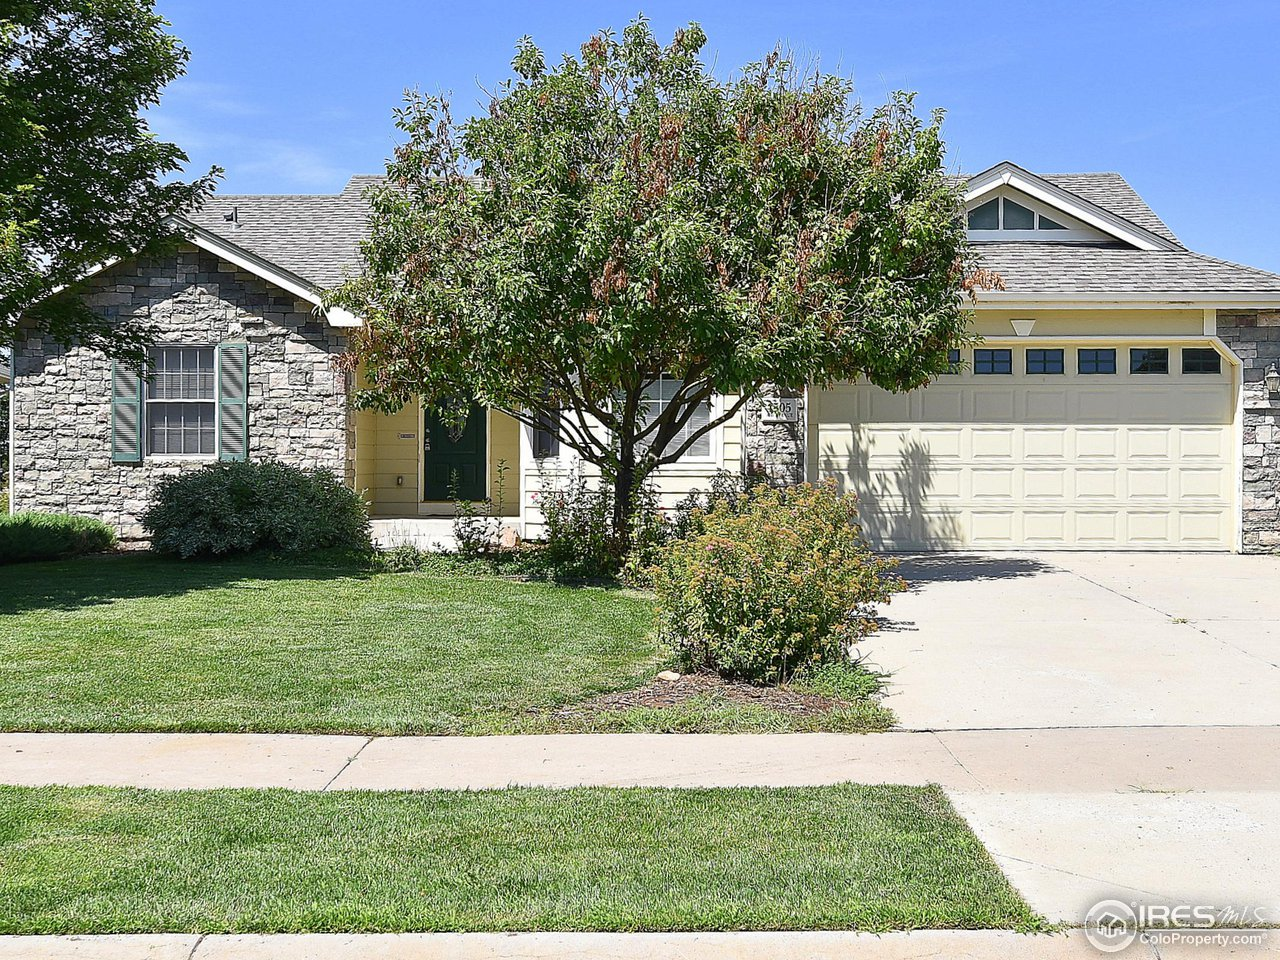 Incredible ranch with mountain views and a walkout basement backing to open space and walking path that take you Greeley Family FunPlex! 5 bedroom 3 bath home with open floor plan and wooden floors. Large master bedroom with 5 piece master bath and walk in closet. Main floor laundry. Full finished basement with two additional bedrooms and a large family room. Central Air Conditioning. Located blocks to library, medical facilities, and grocery shopping. Easy access to HWY 34 and I25.